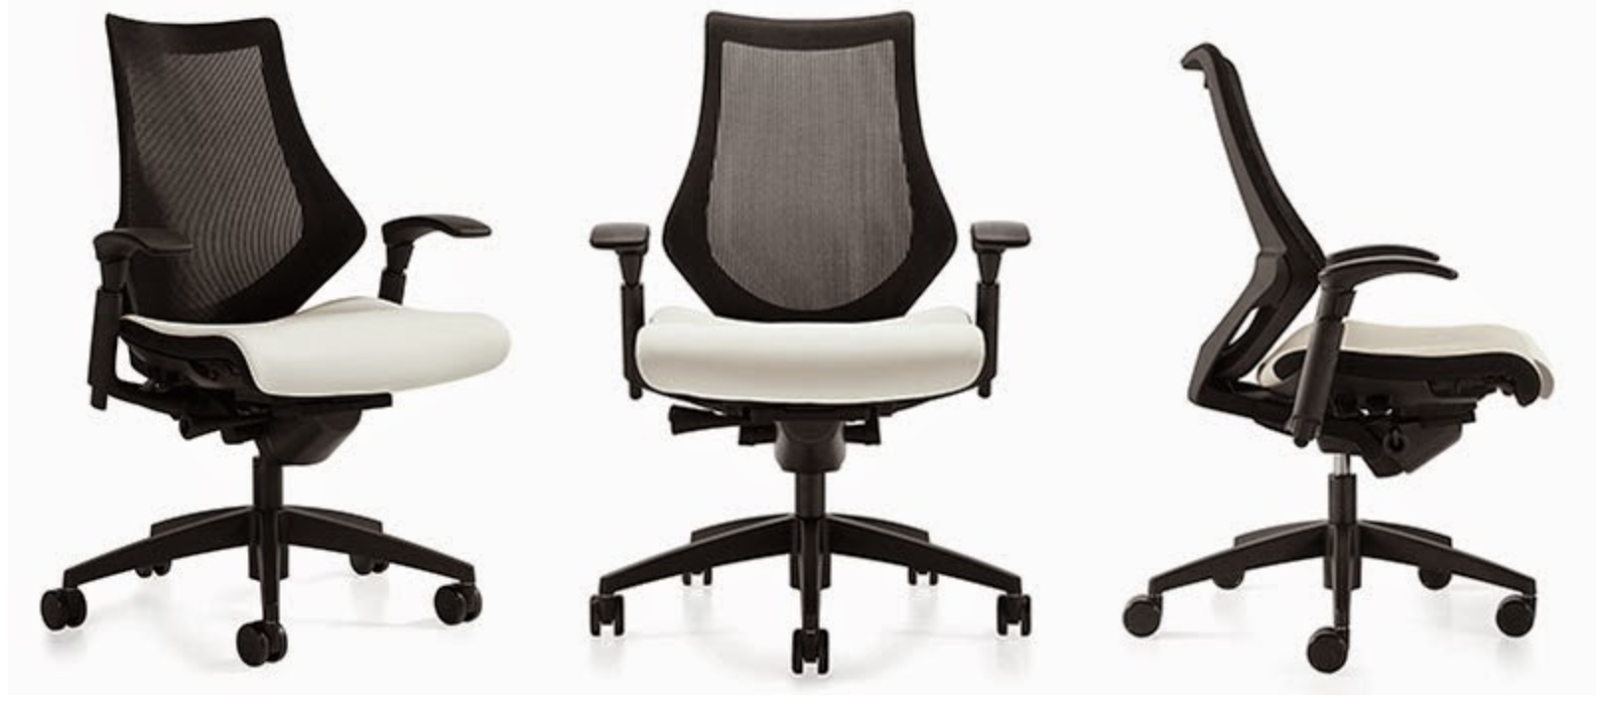 The Office Furniture Blog At OfficeAnythingcom Whats New - Global chairs